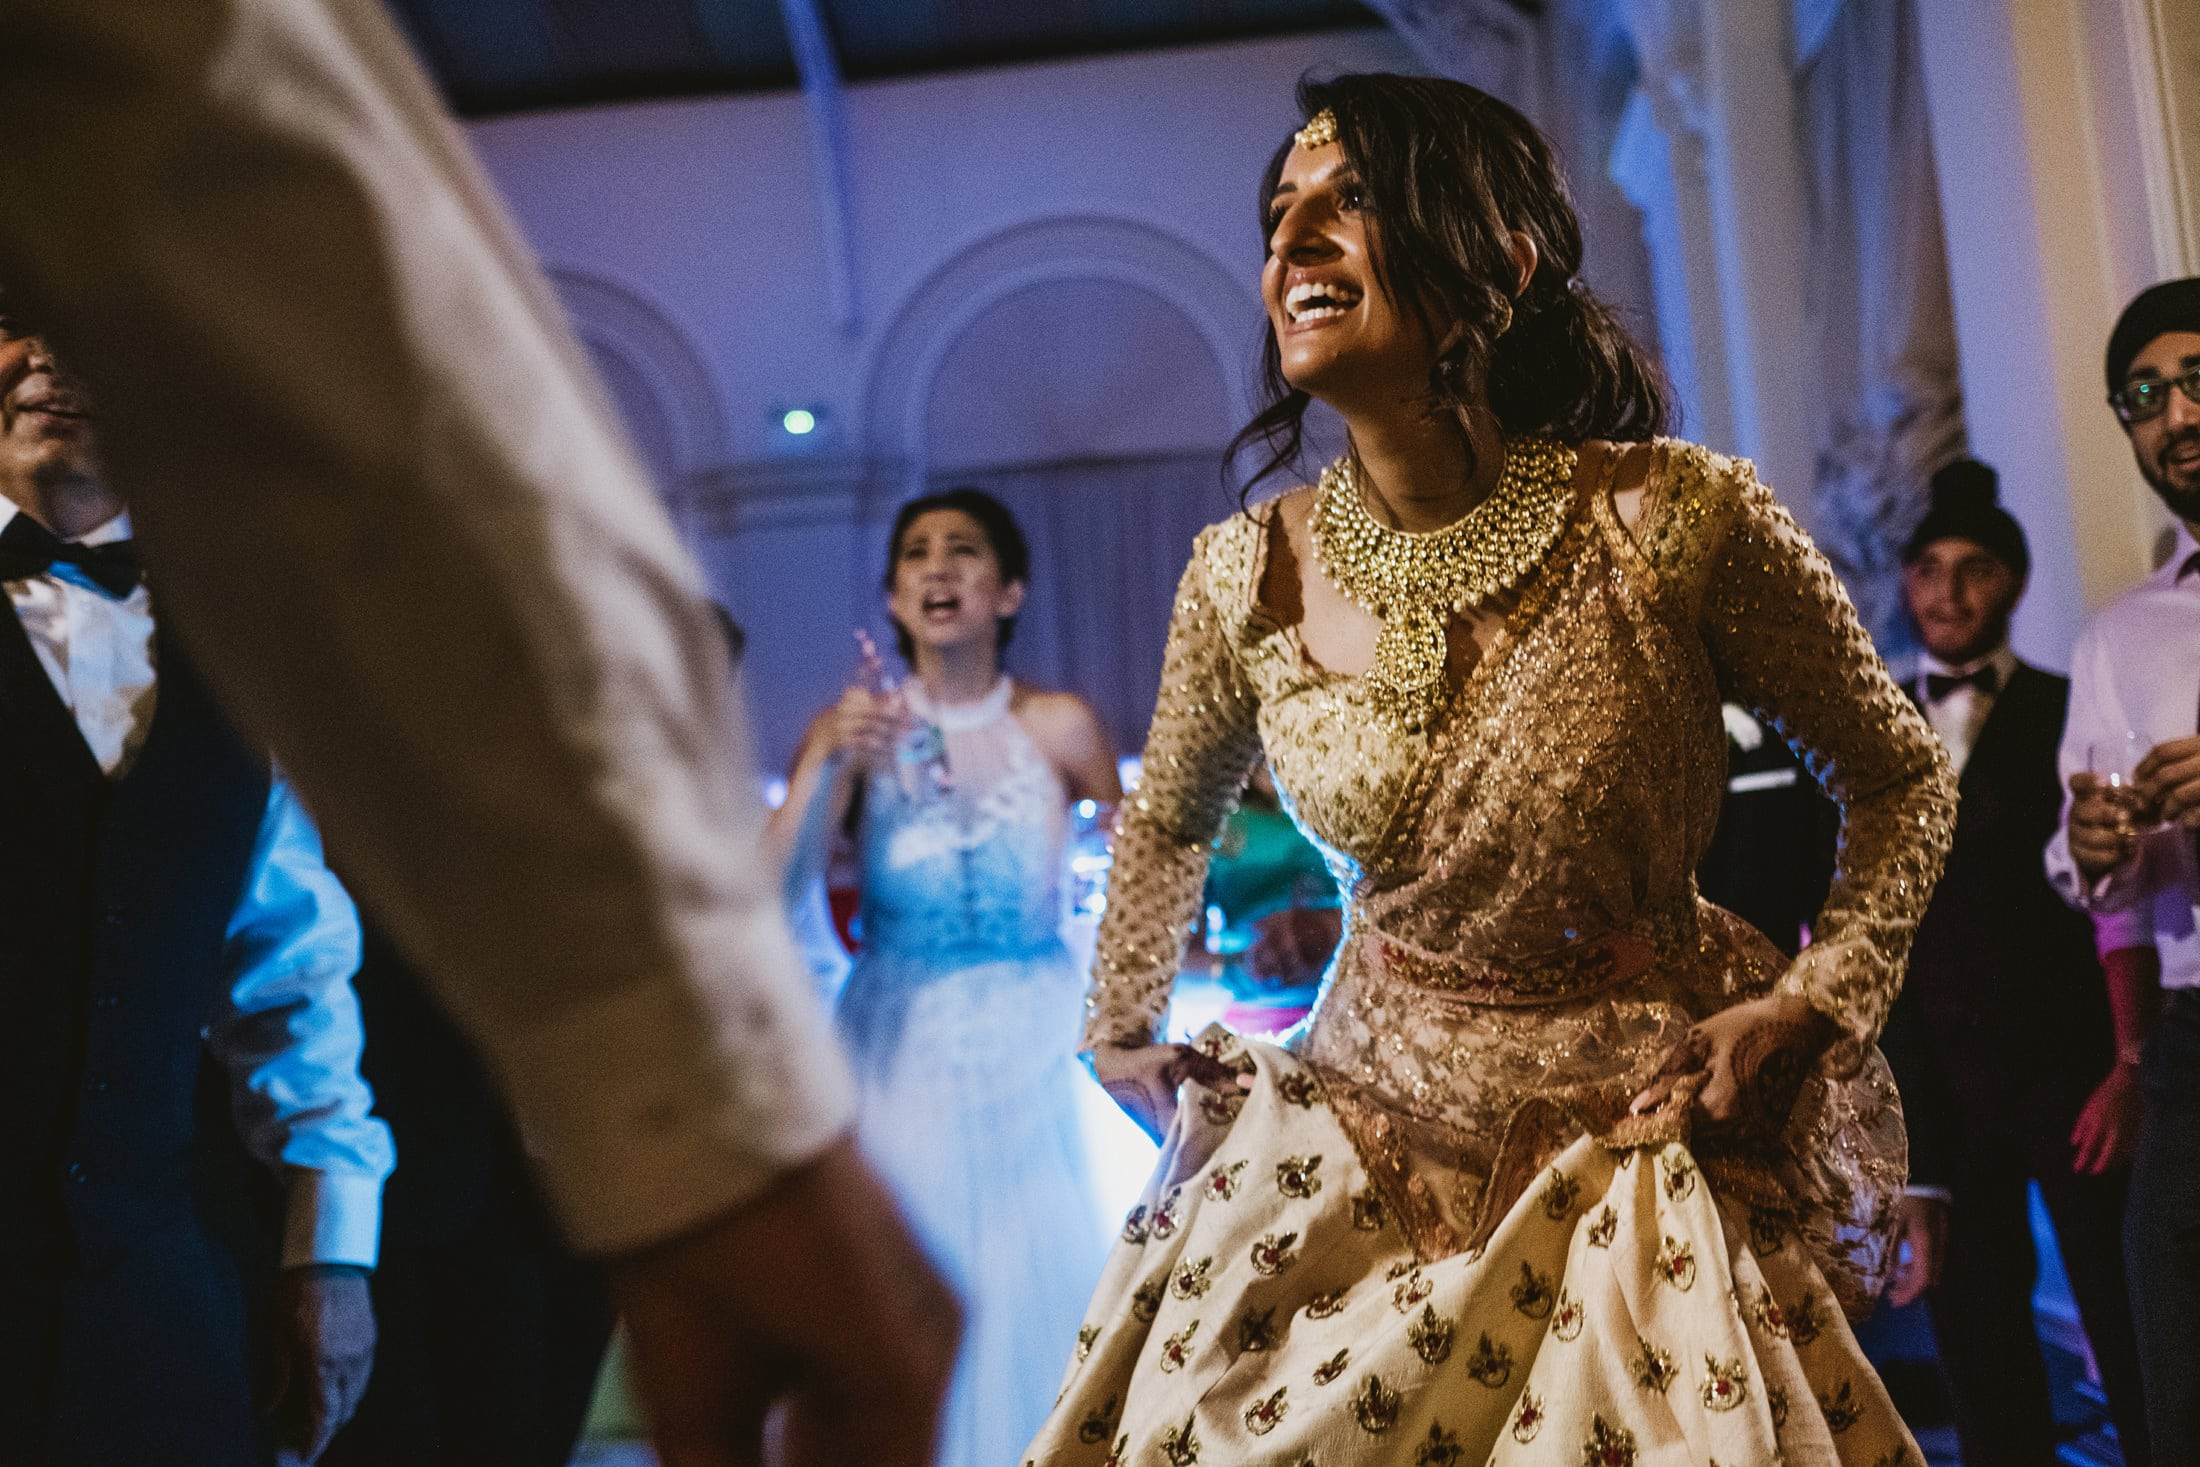 Bride on dance floor at Blenheim Palace